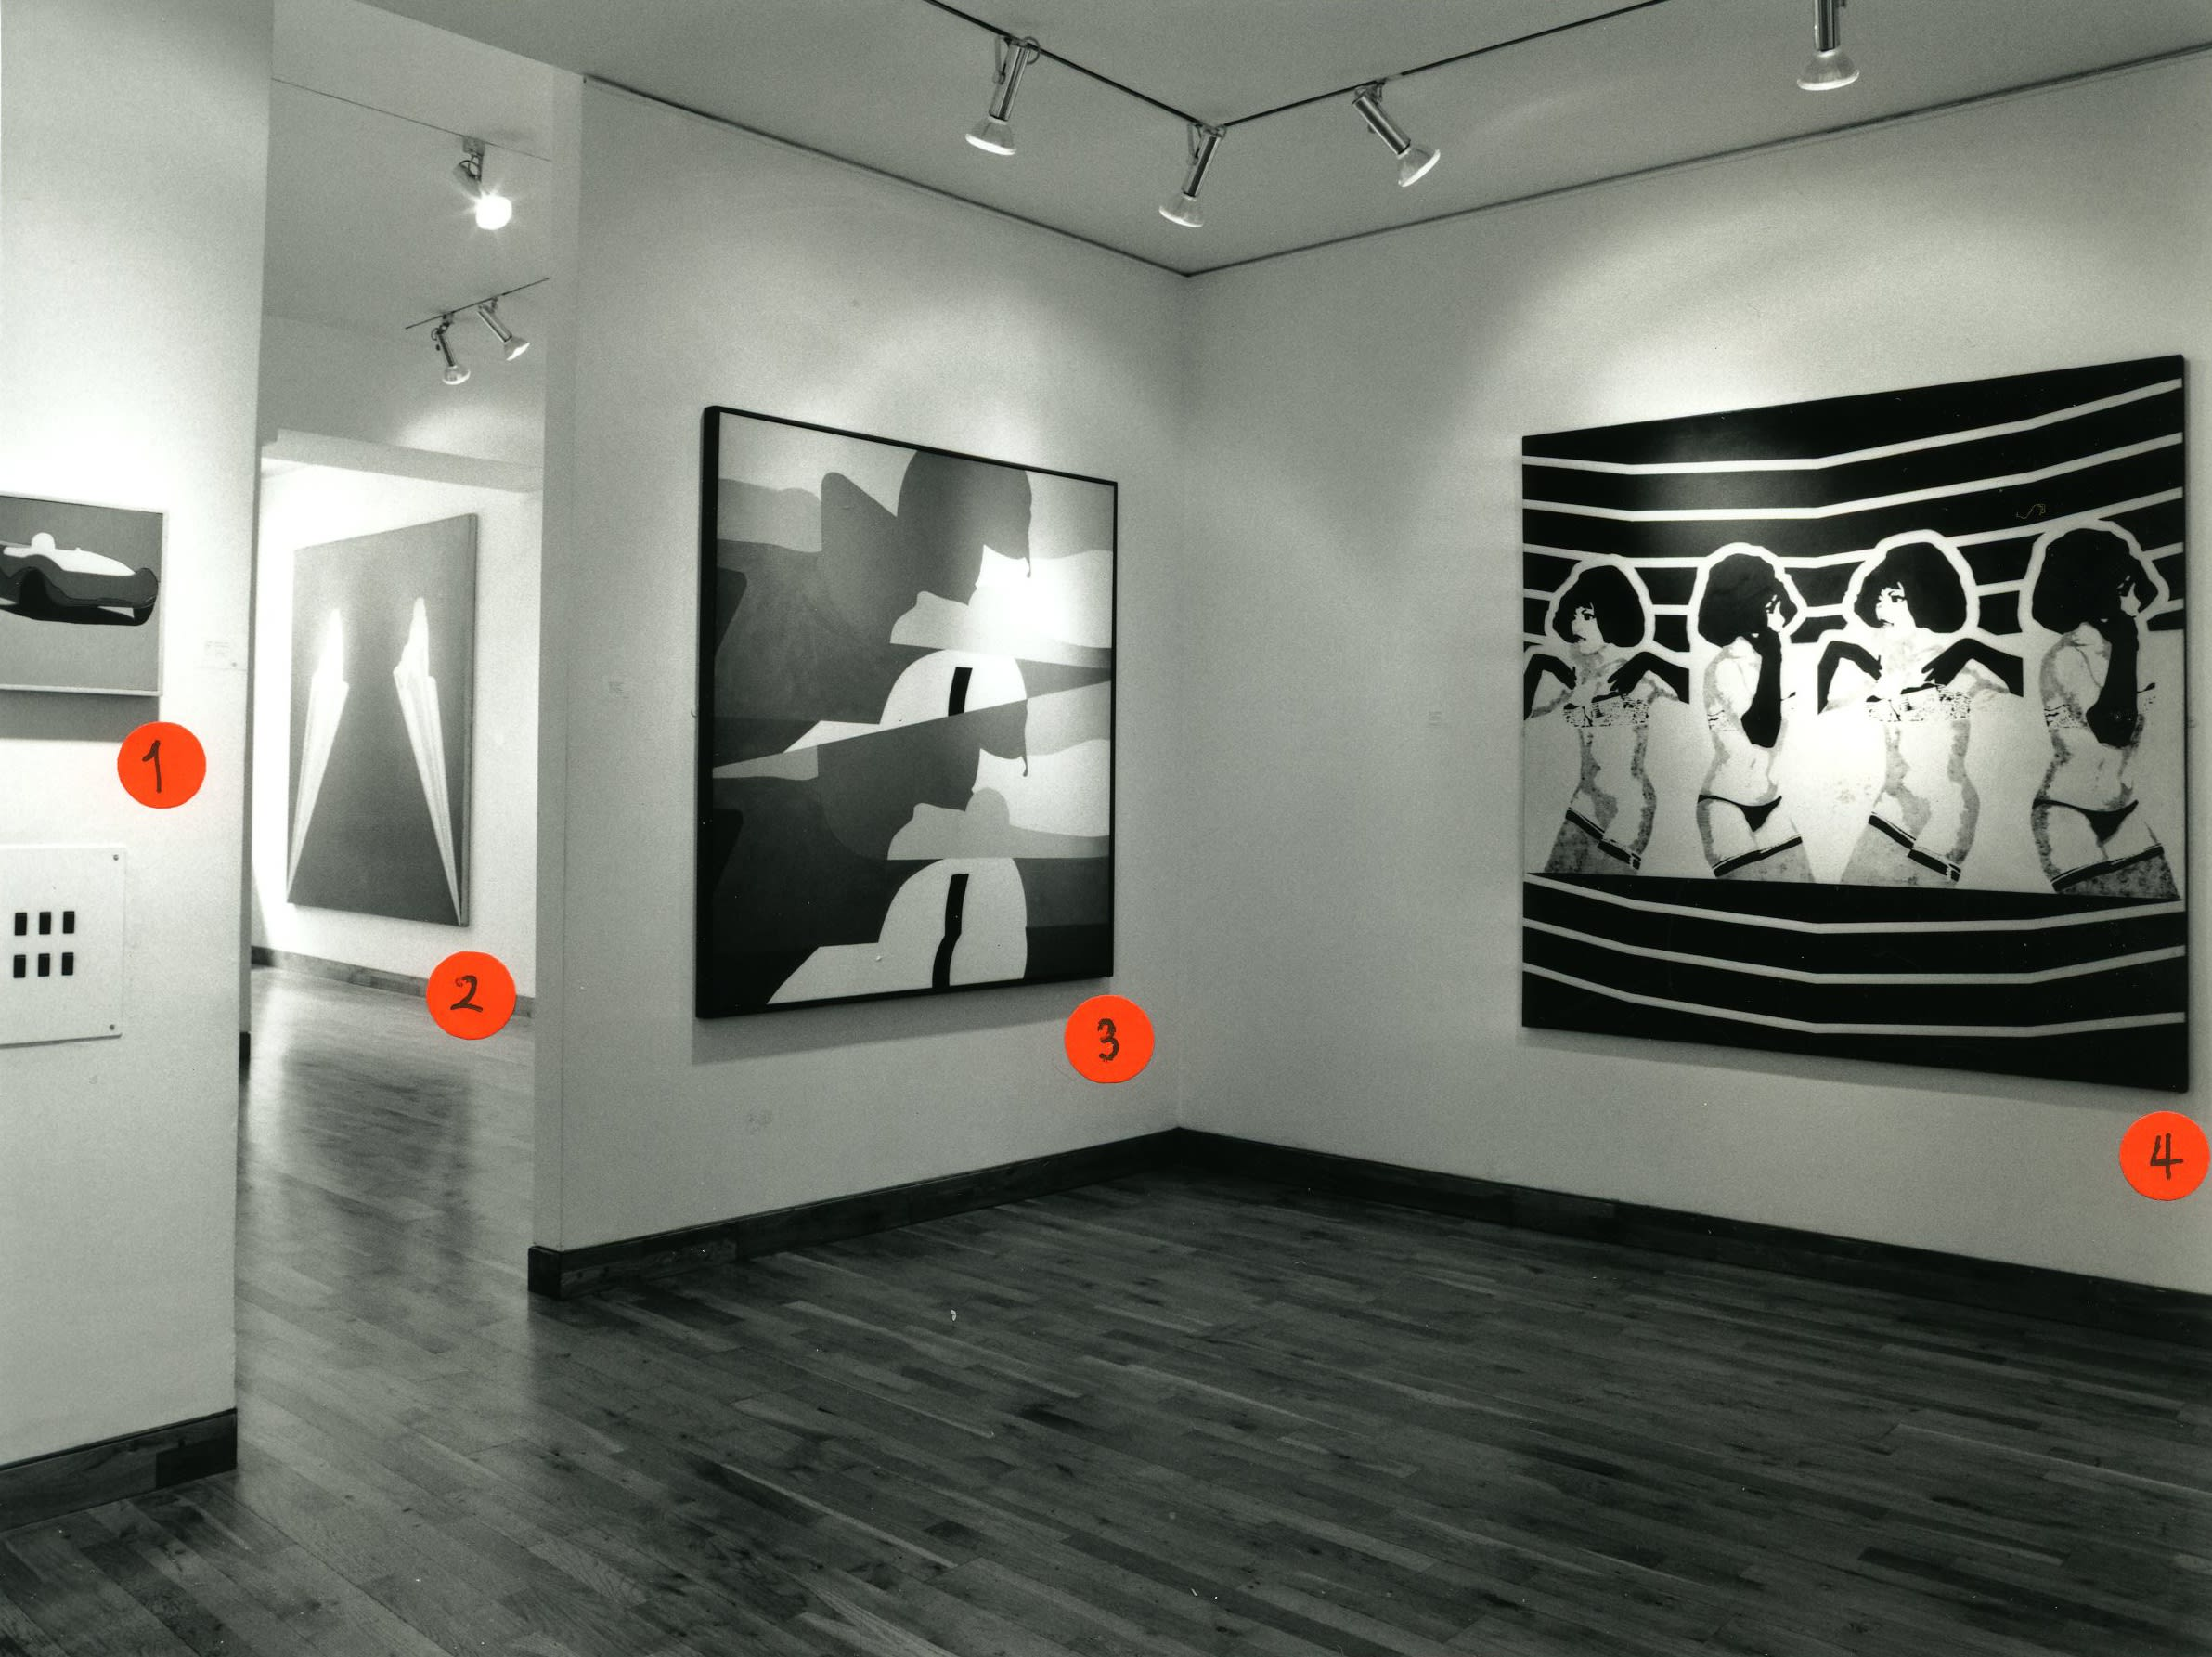 """<span class=""""link fancybox-details-link""""><a href=""""/exhibitions/156/works/image_standalone673/"""">View Detail Page</a></span><p>ANTONY DONALDSON 